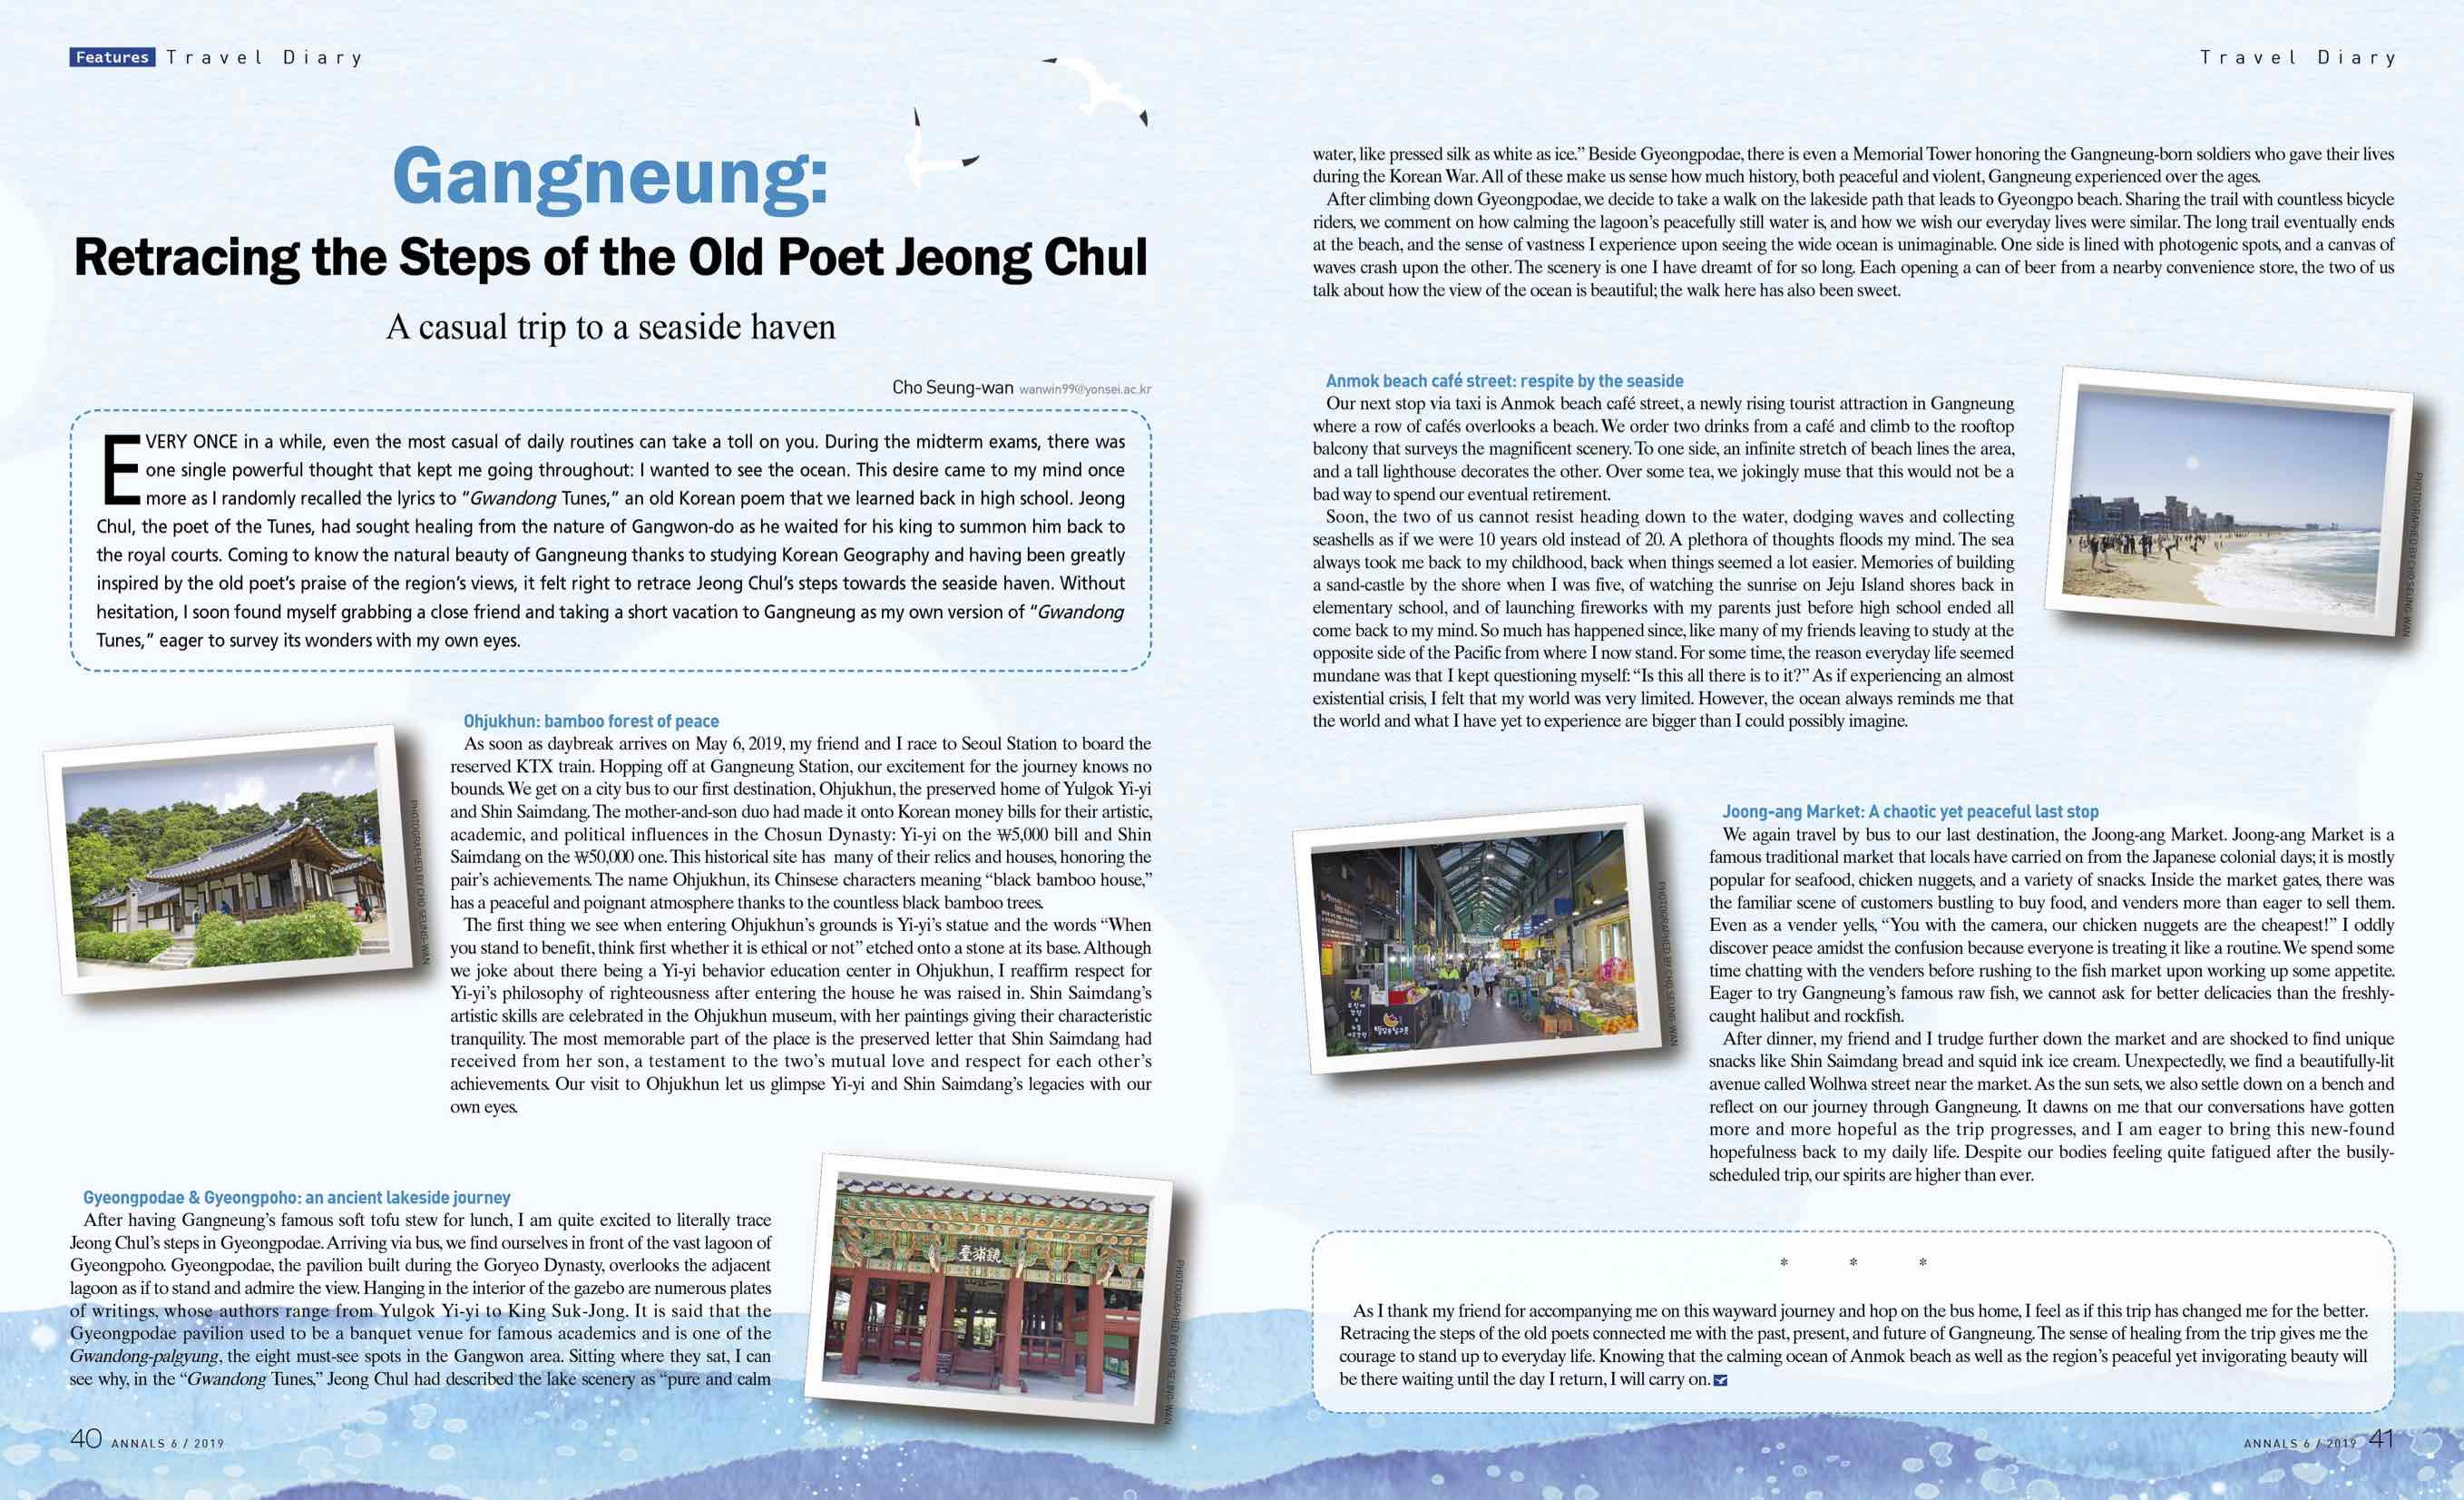 Gangneung: Retracing the steps of the old poet Jeong Chul